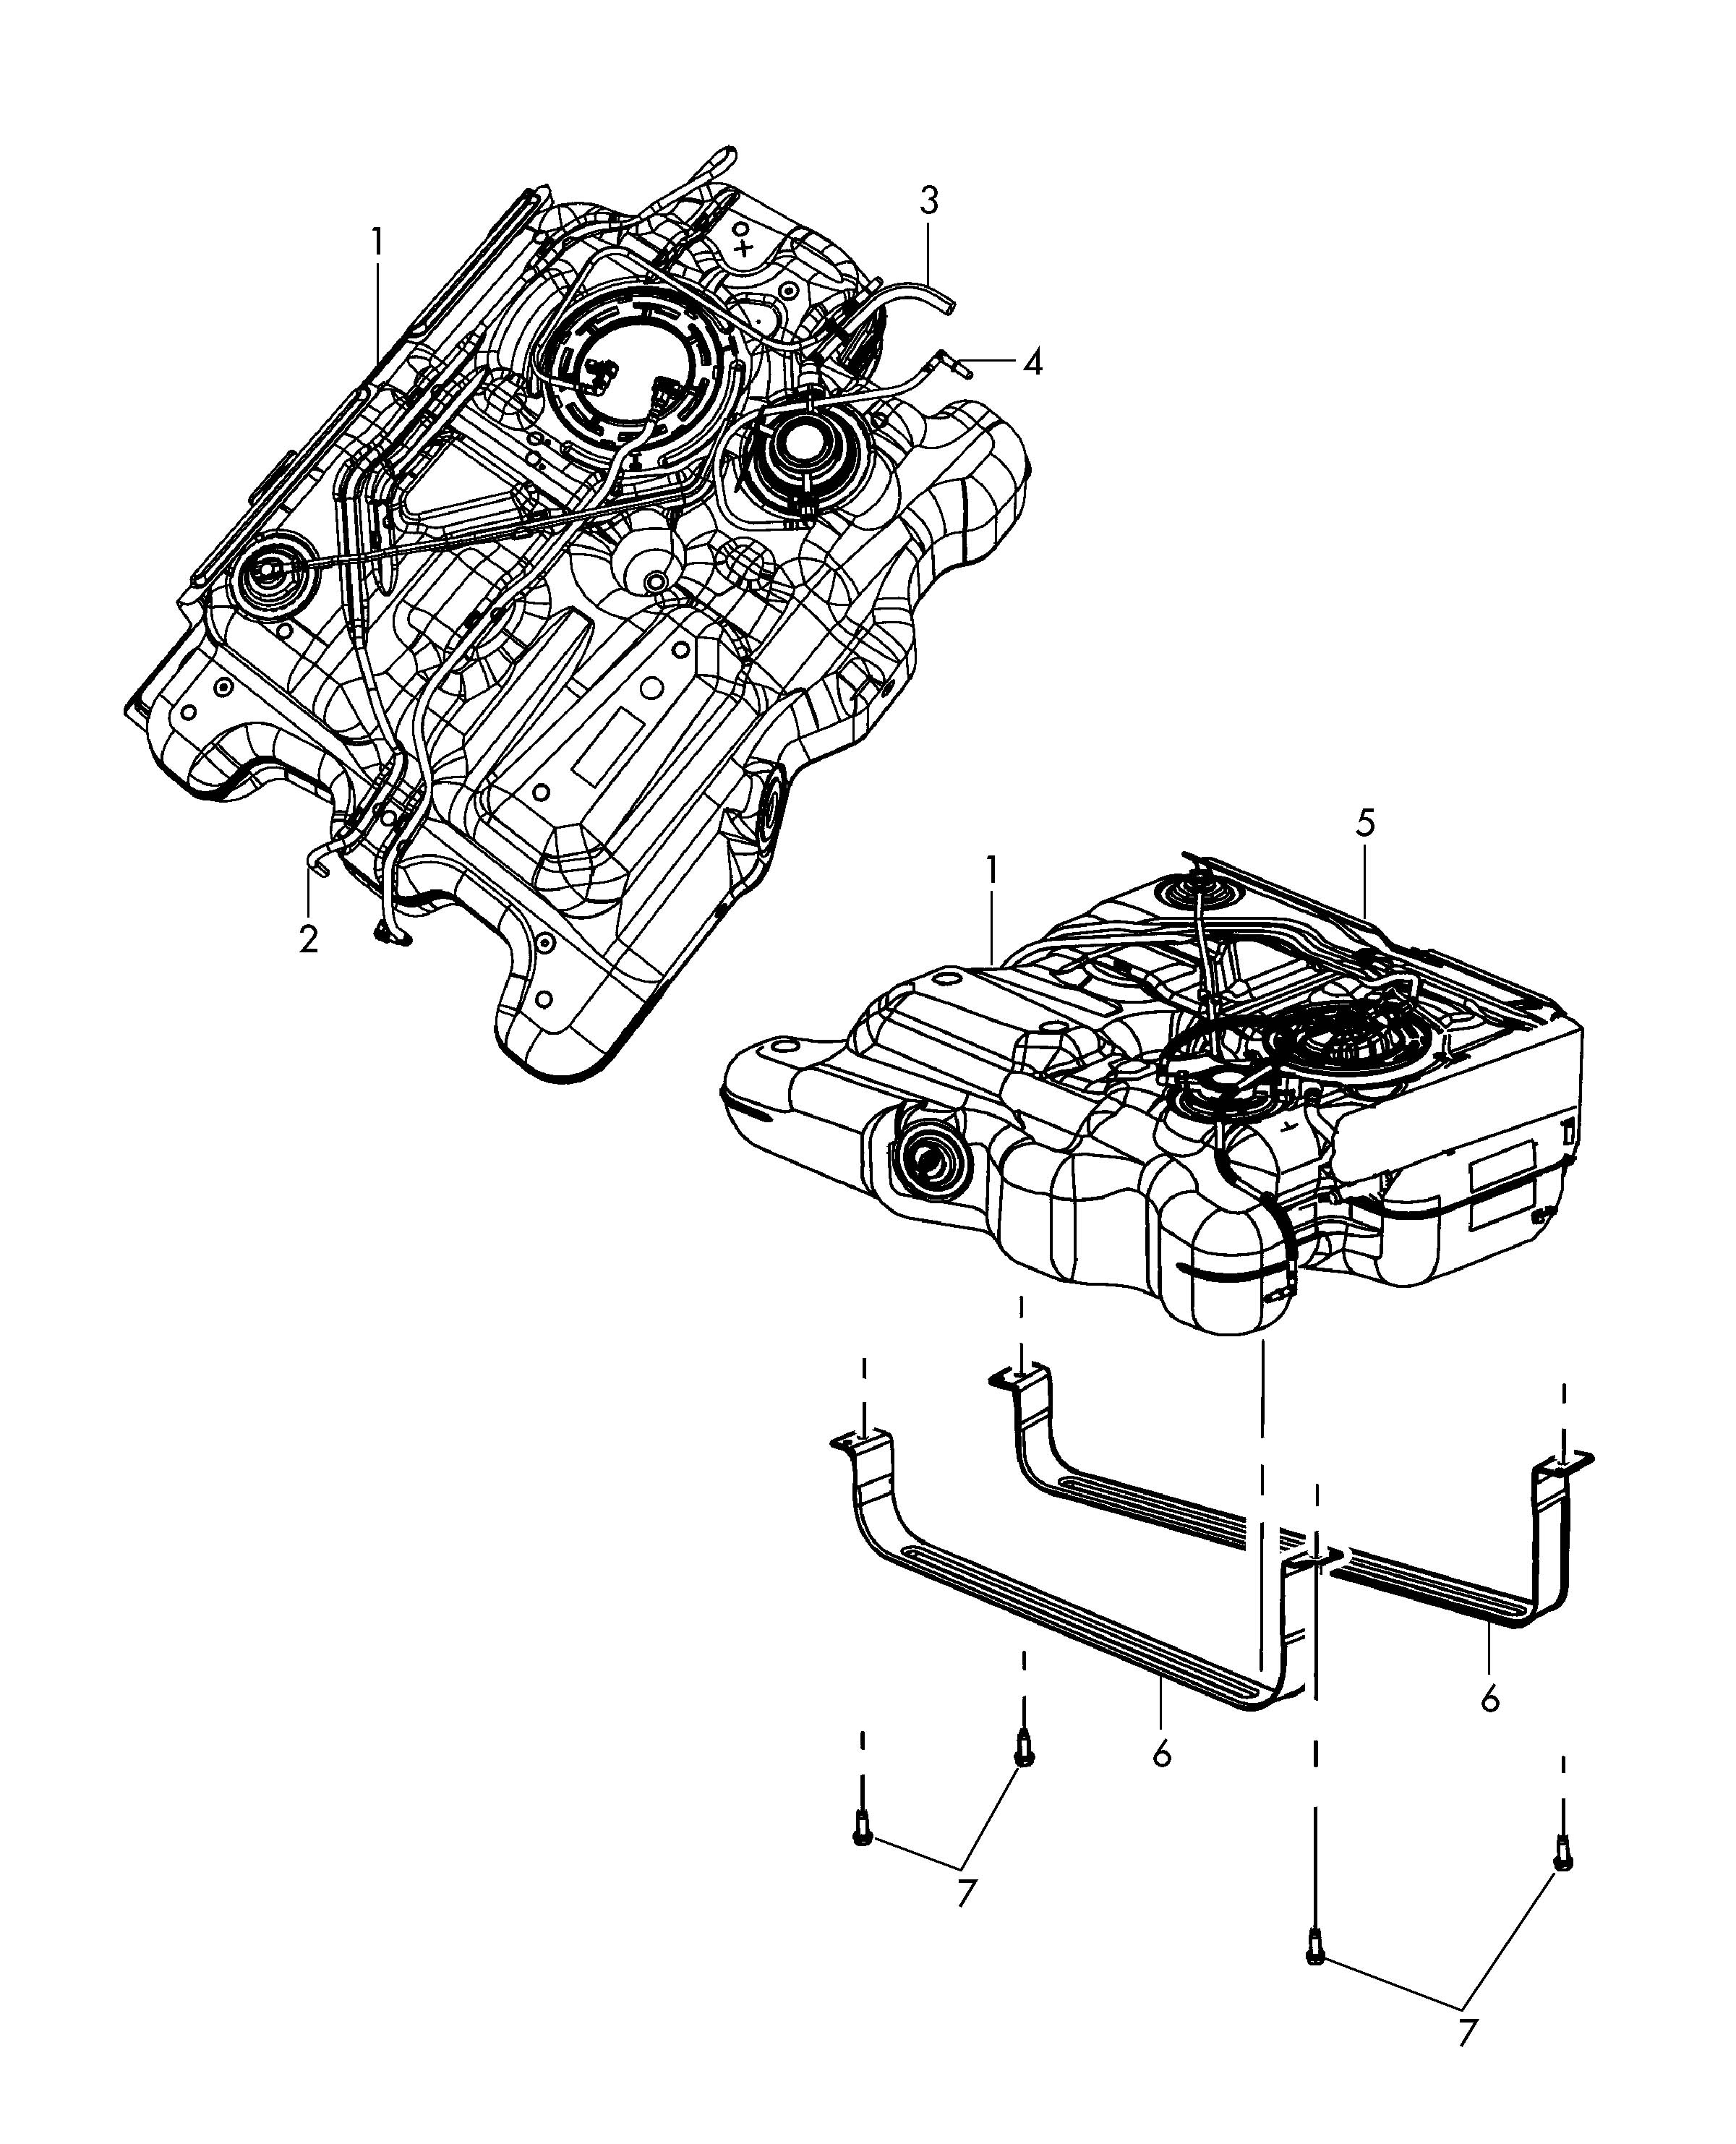 1997 mitsubishi mirage repair manual